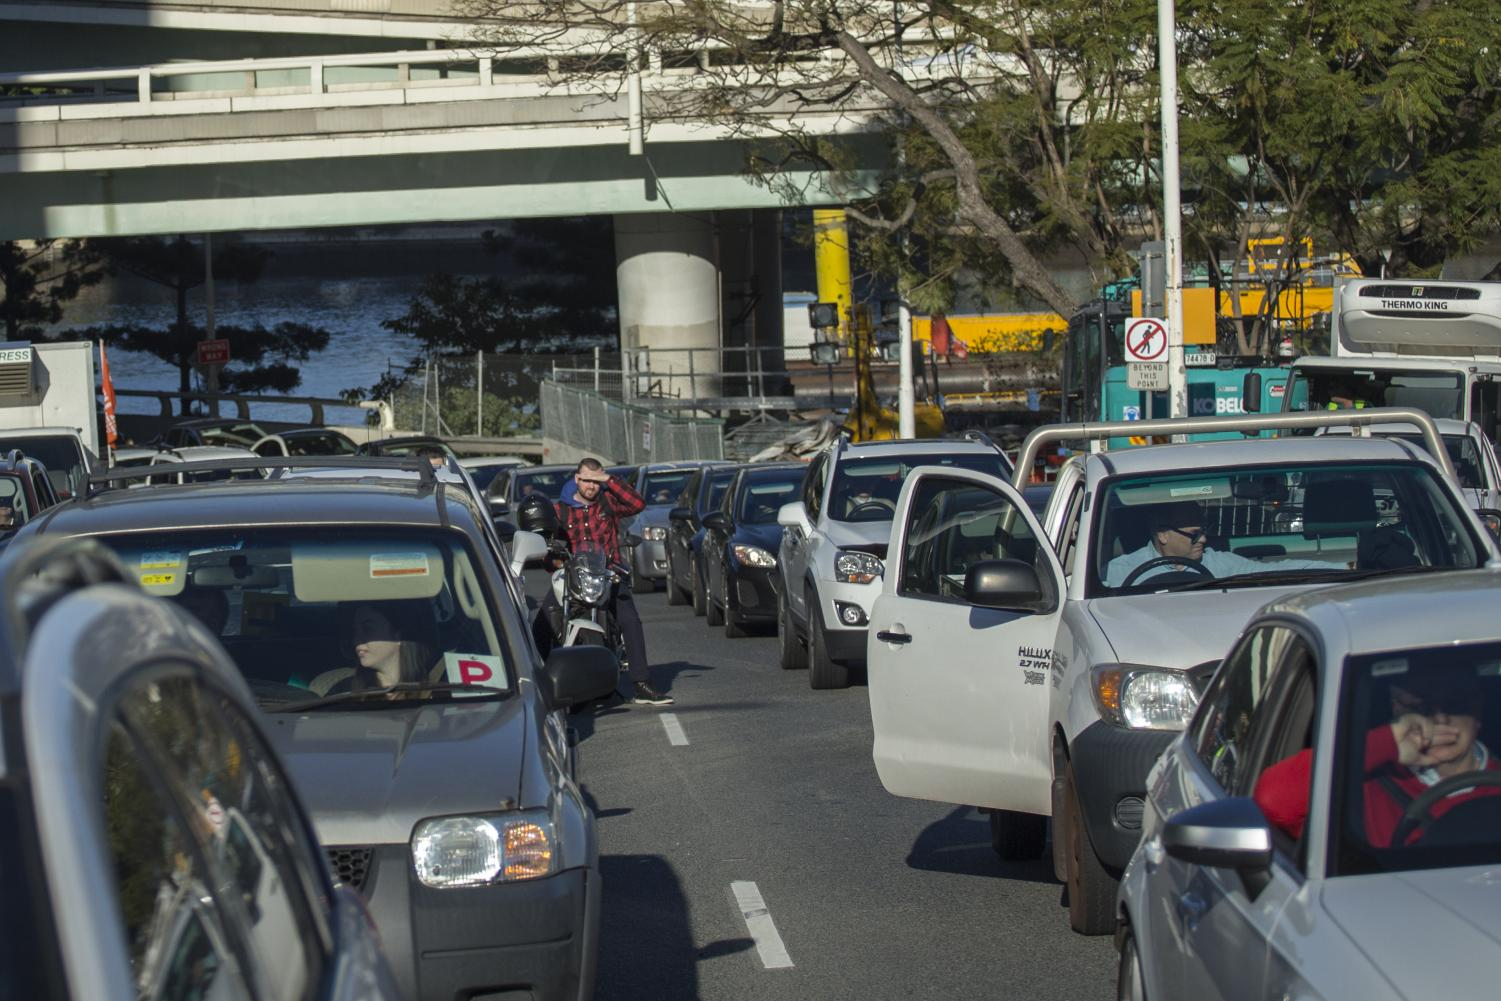 Another protest, another log jam and some drivers coming into Brisbane's CBD were unimpressed with the hold up.